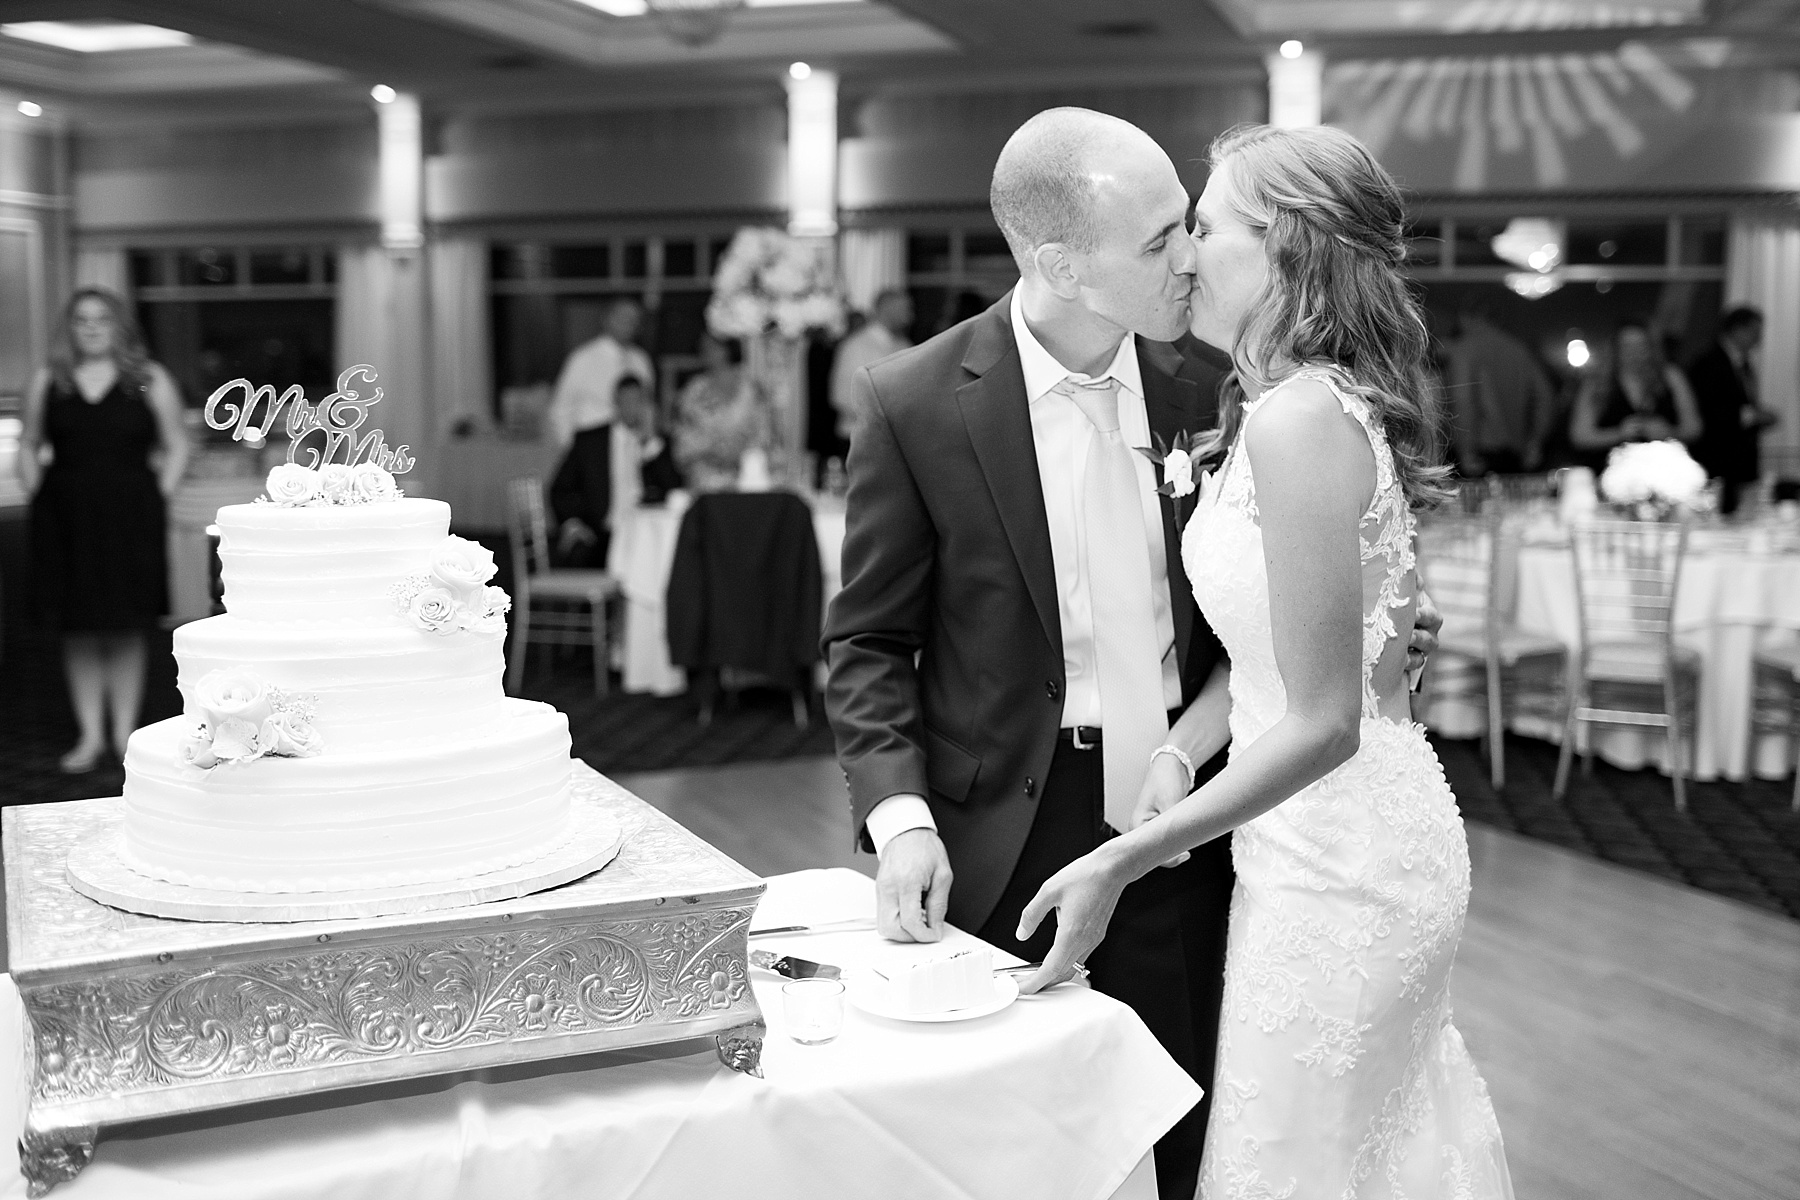 Ashley Mac Photographs | NJ wedding photographer | Battleground Country Club wedding | Battleground Country Club wedding photographer | Manalapan, NJ wedding photographer, New Jersey wedding photographer, romantic NJ wedding day, wedding day, wedding photos